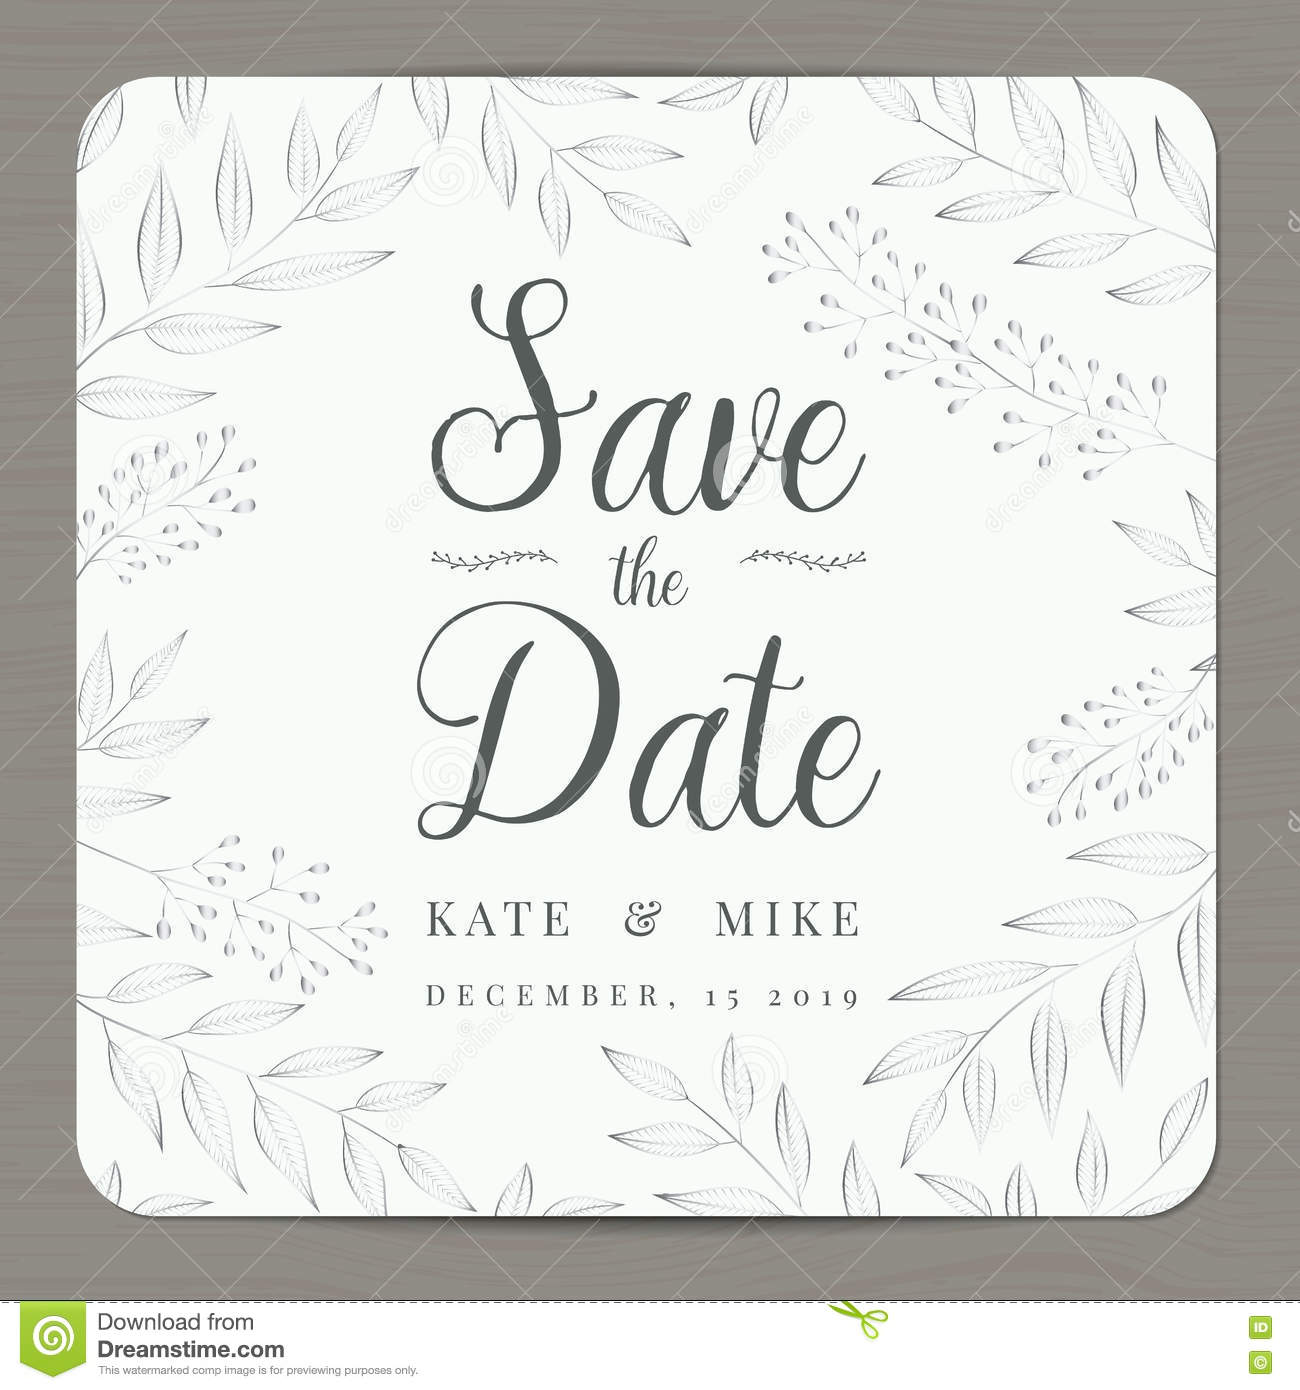 Save The Date Wedding Invitation Card Template With Silver